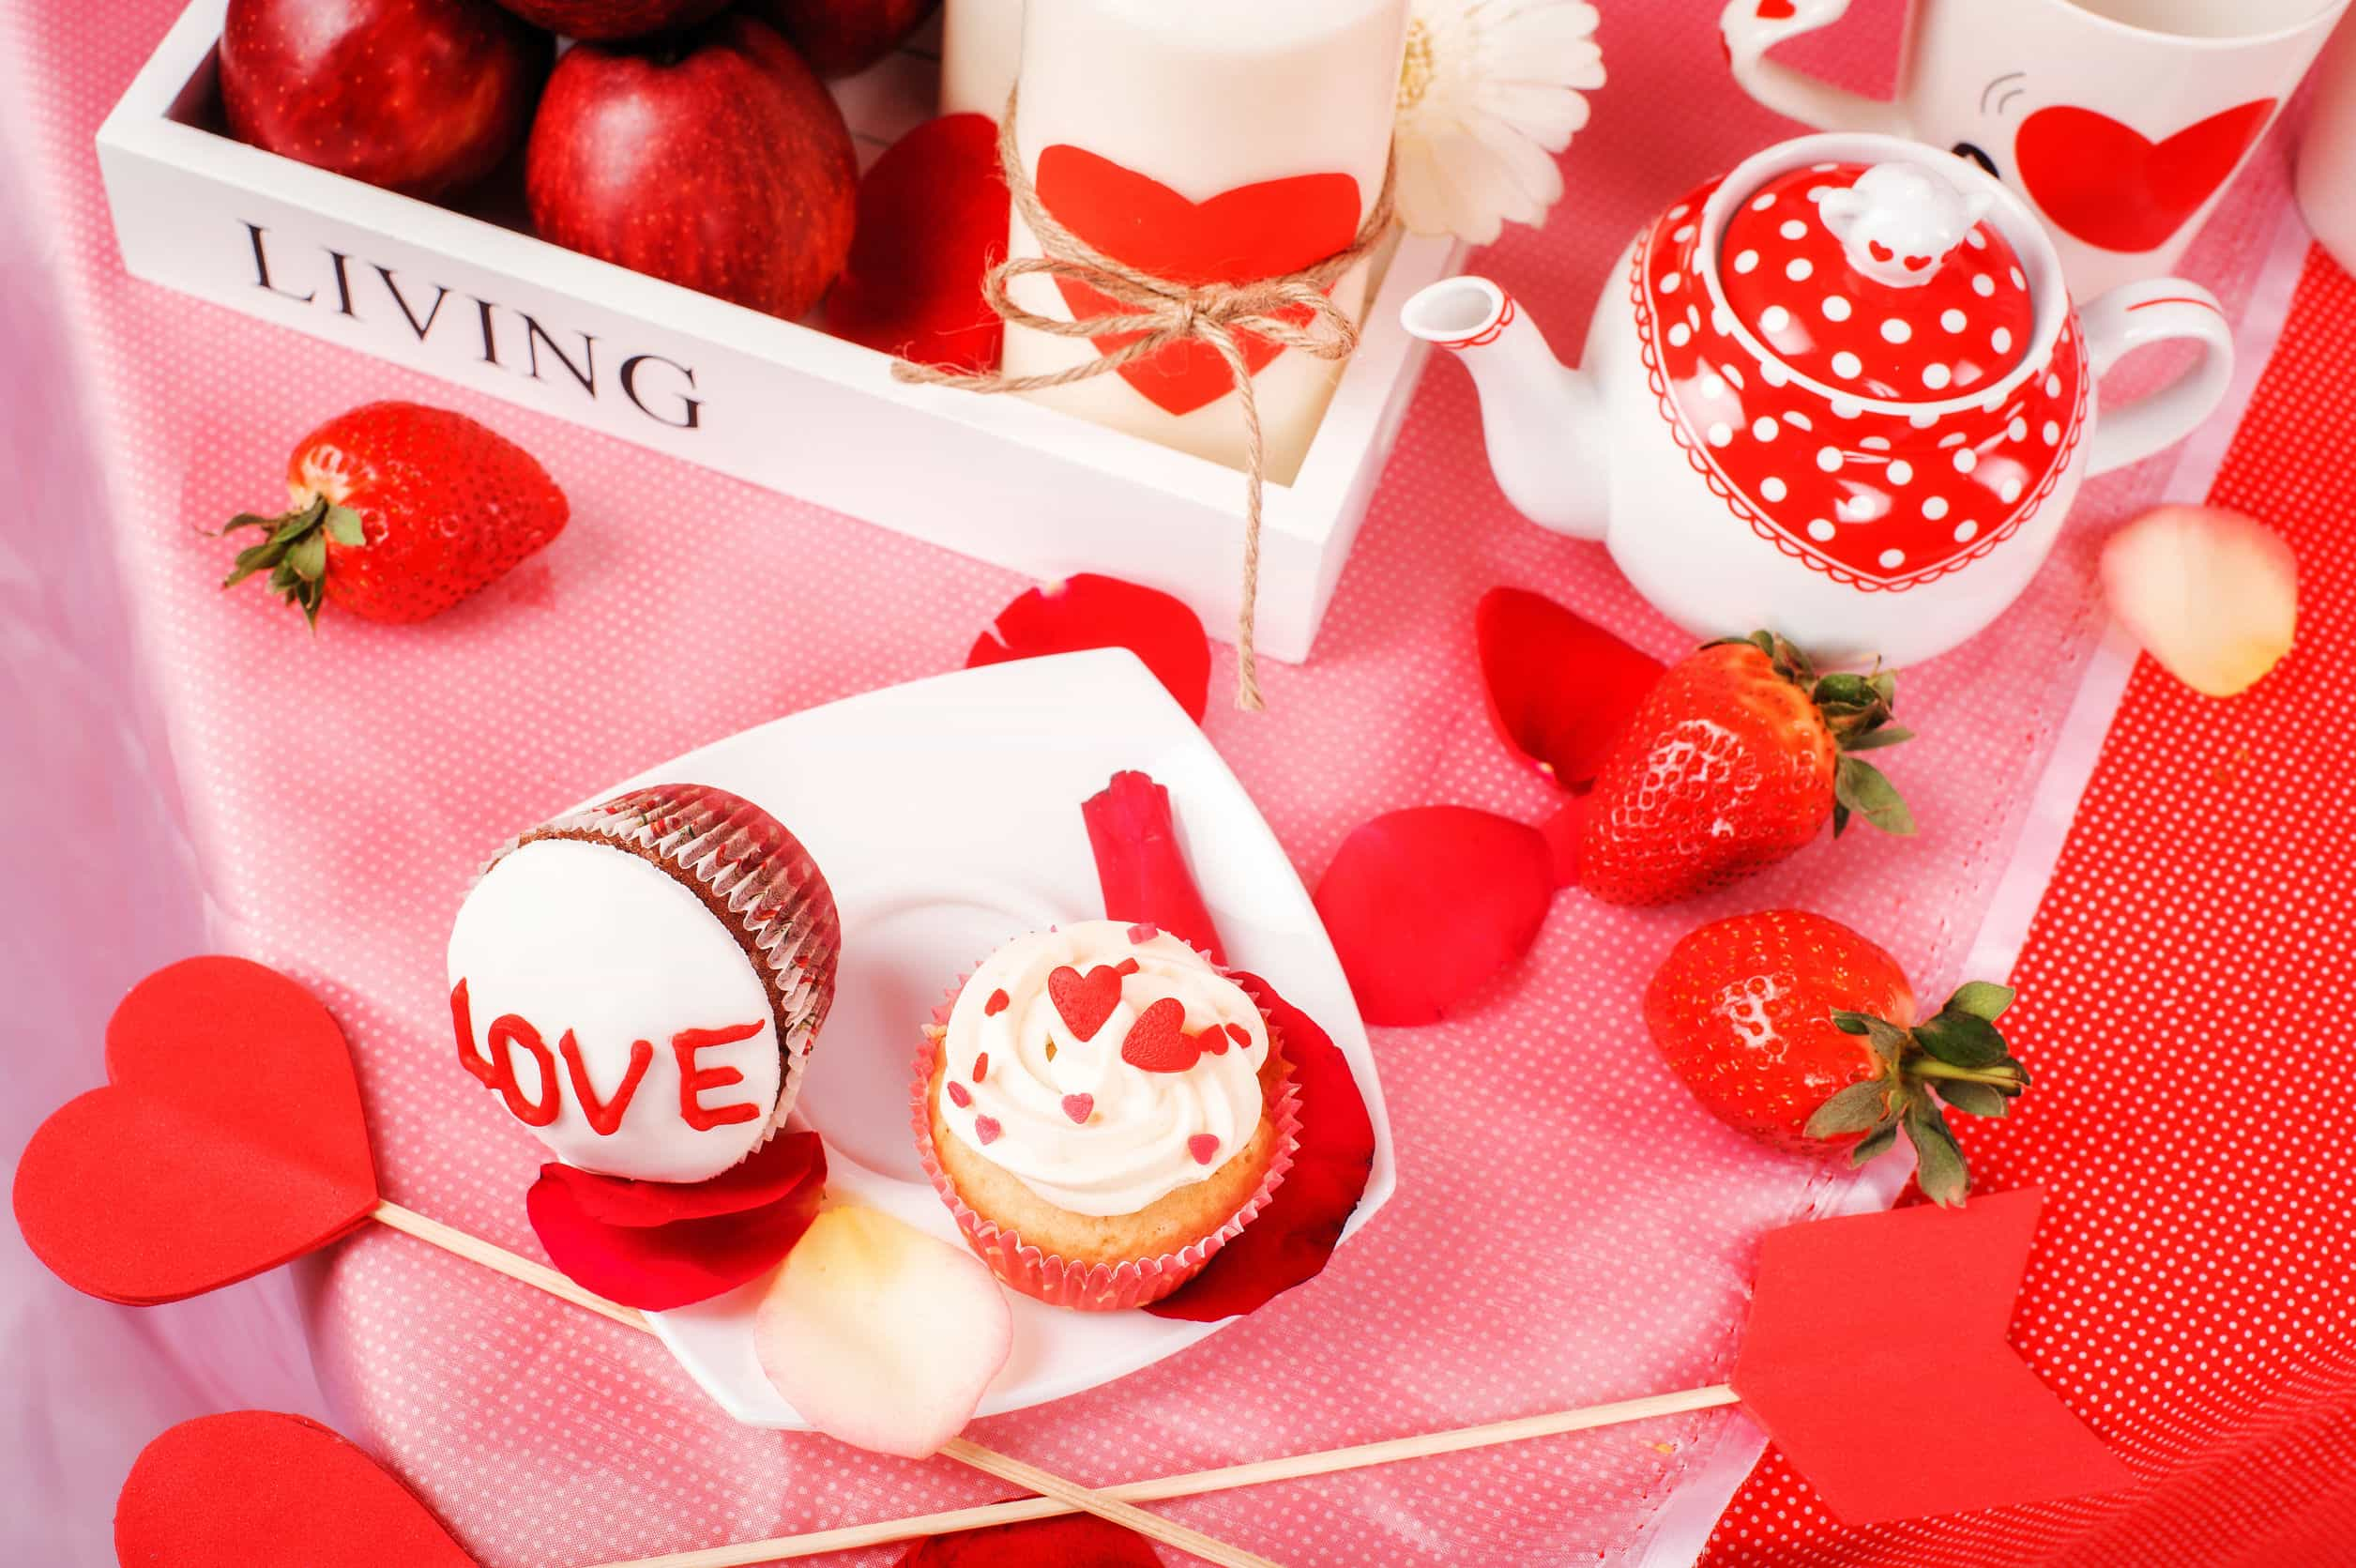 58819353 - saint valentine red and white holiday decor in studio